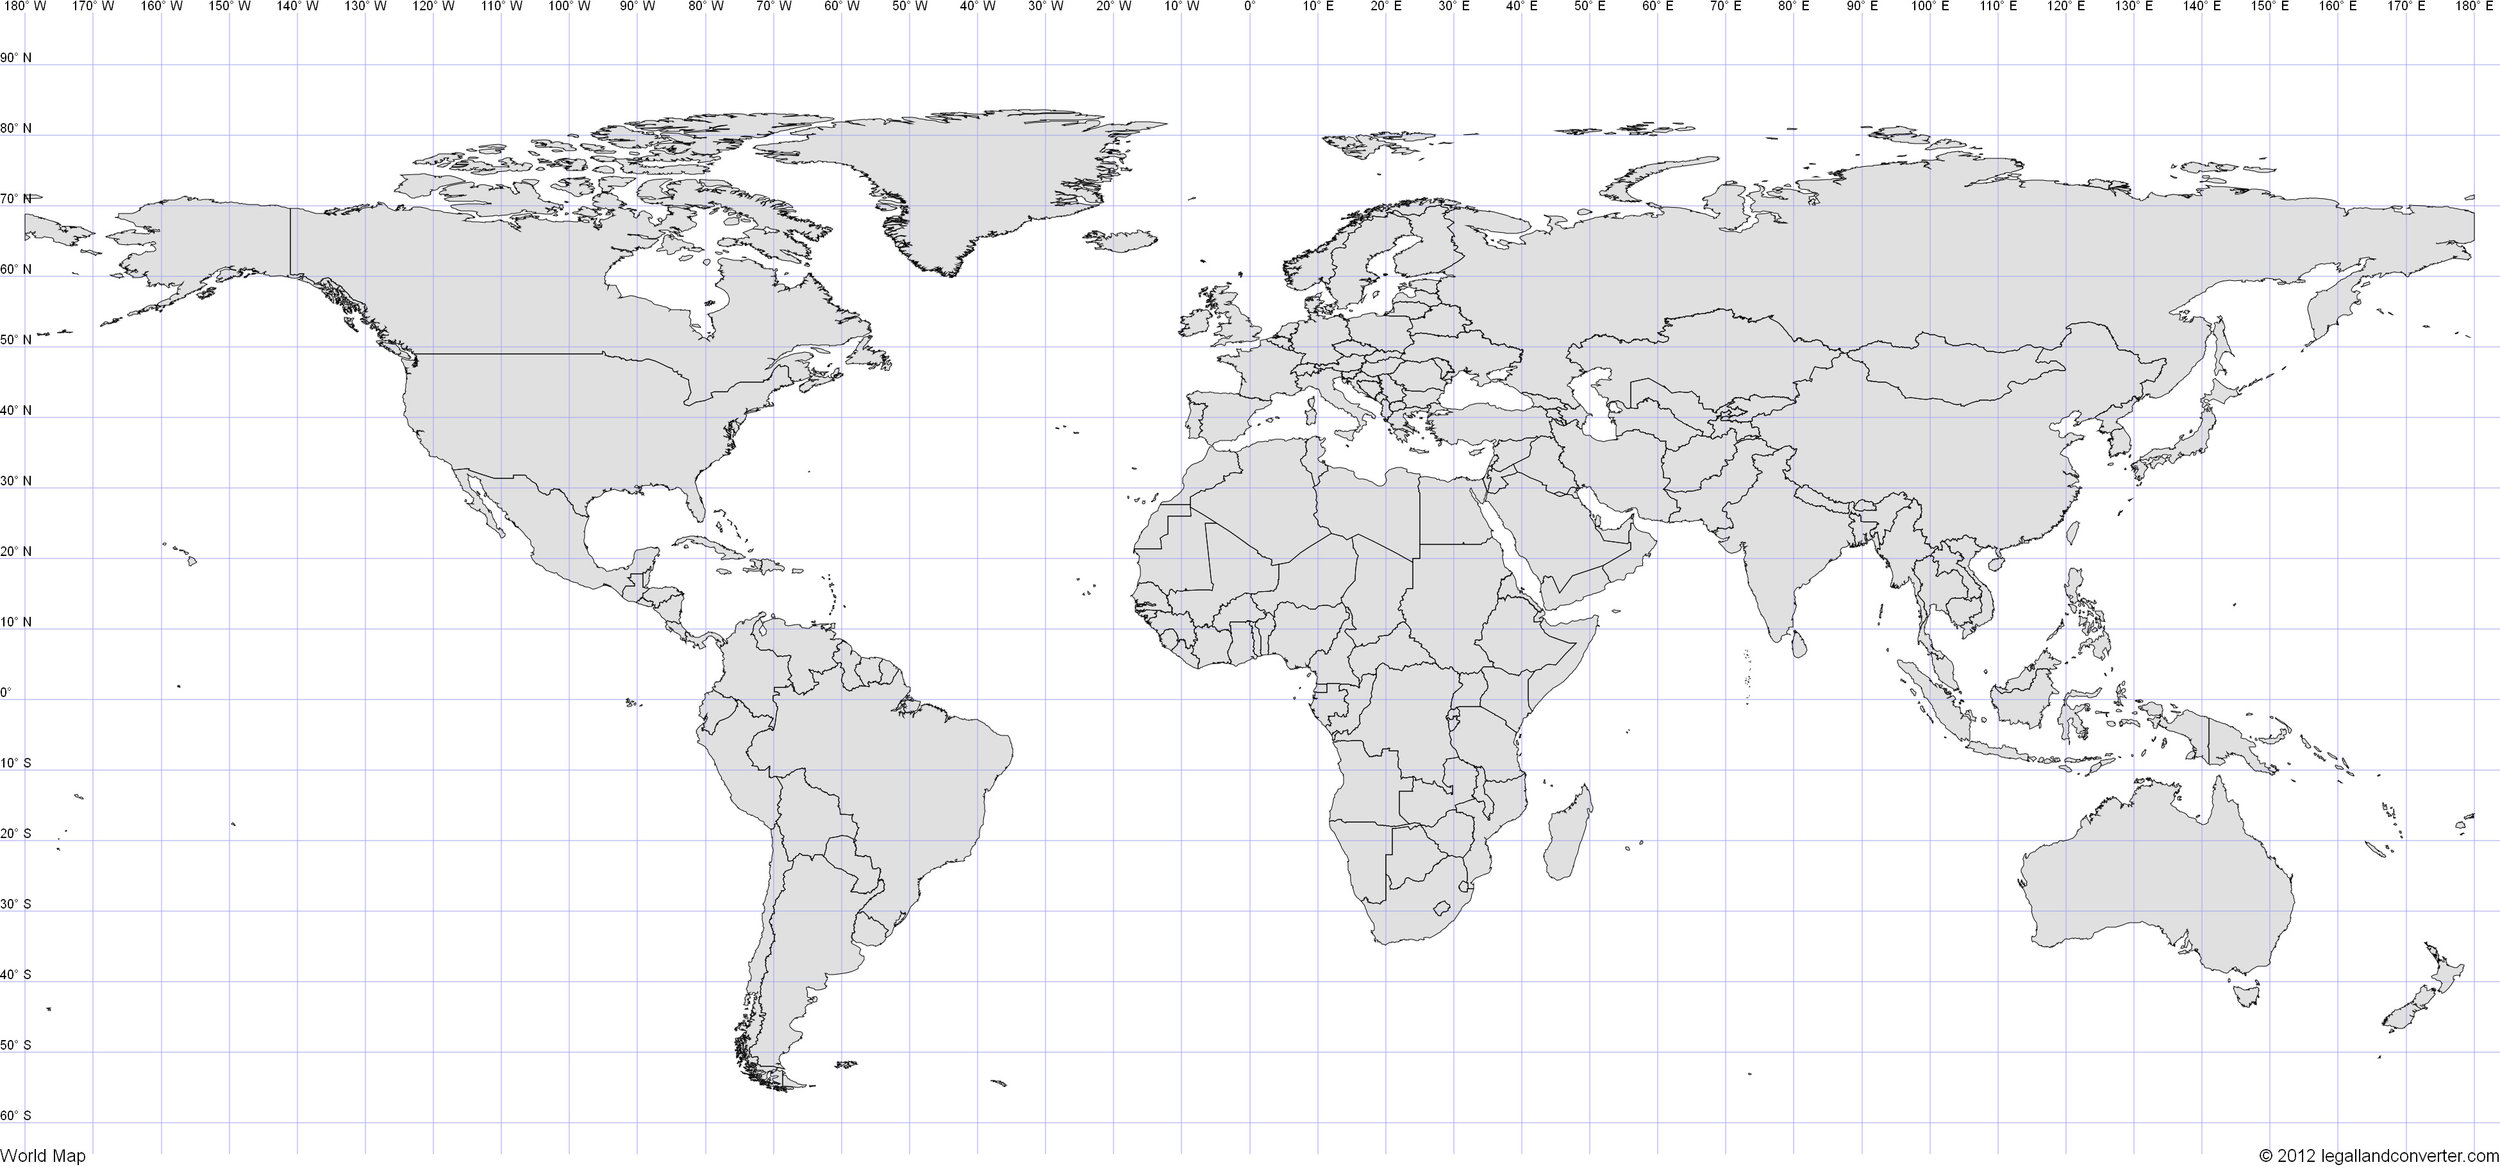 Map without any projection. Source: http://www.legallandconverter.com/images/world.jpg